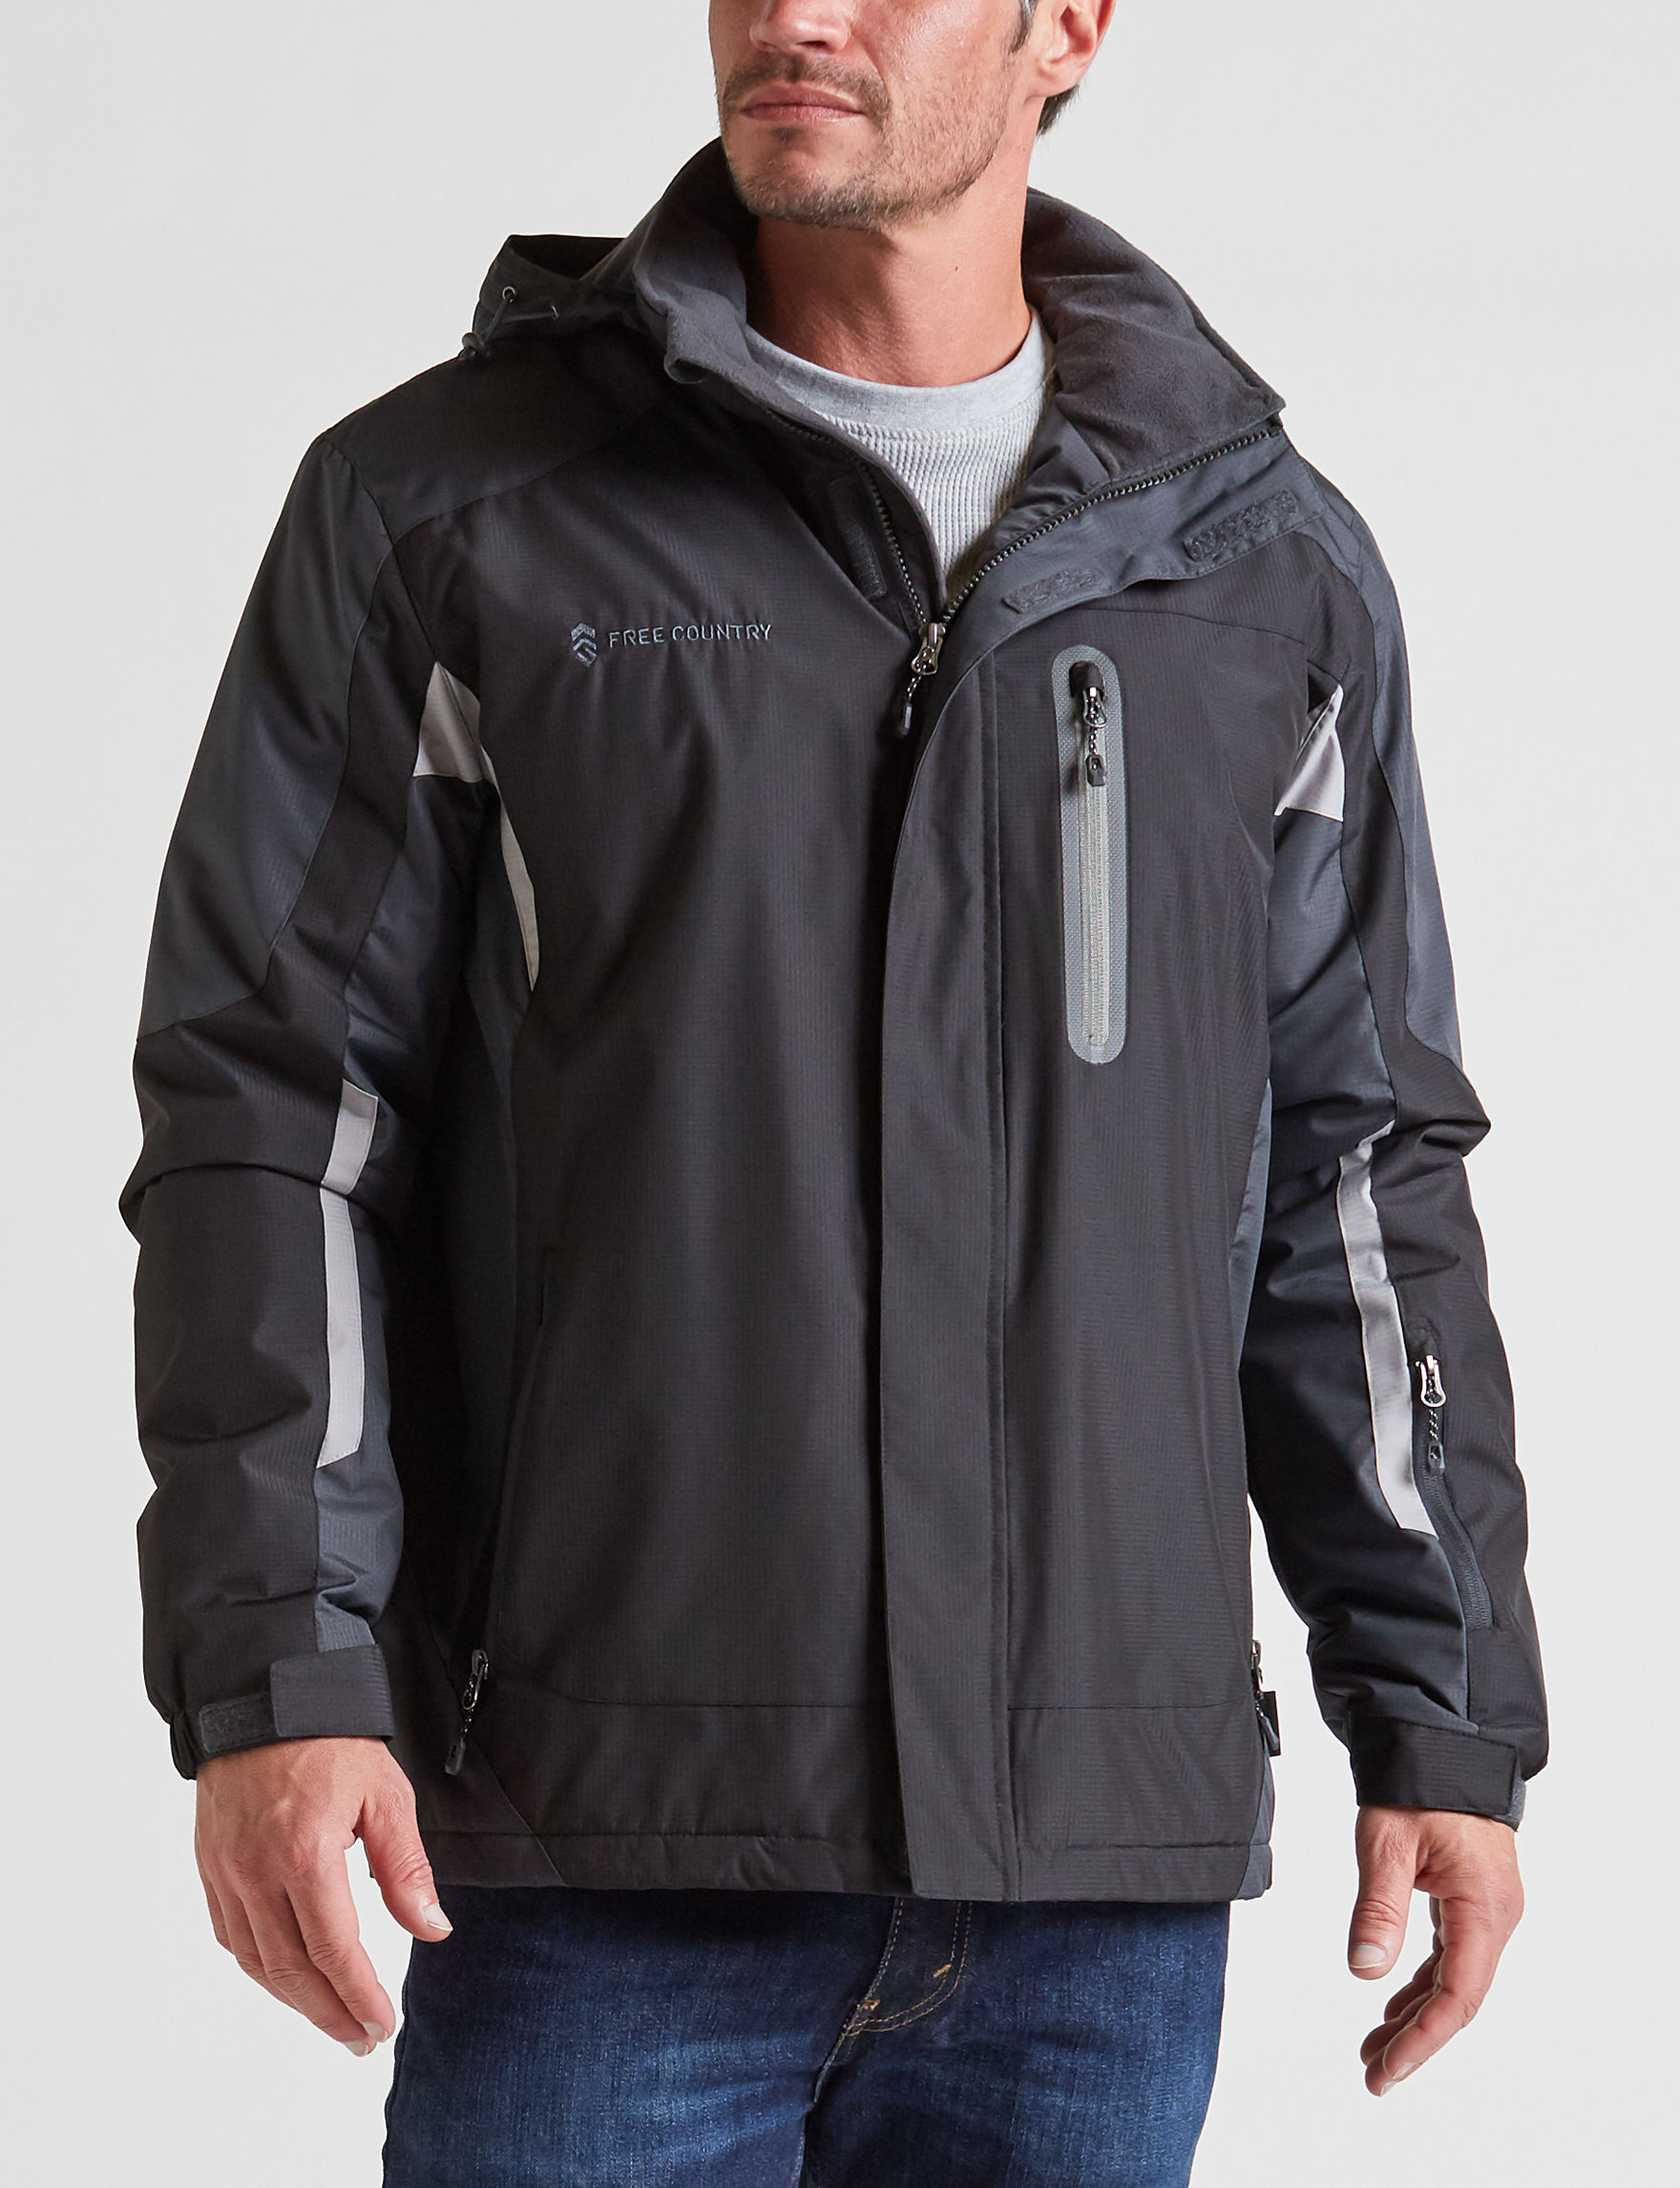 Free Country Jet Black Puffer & Quilted Jackets